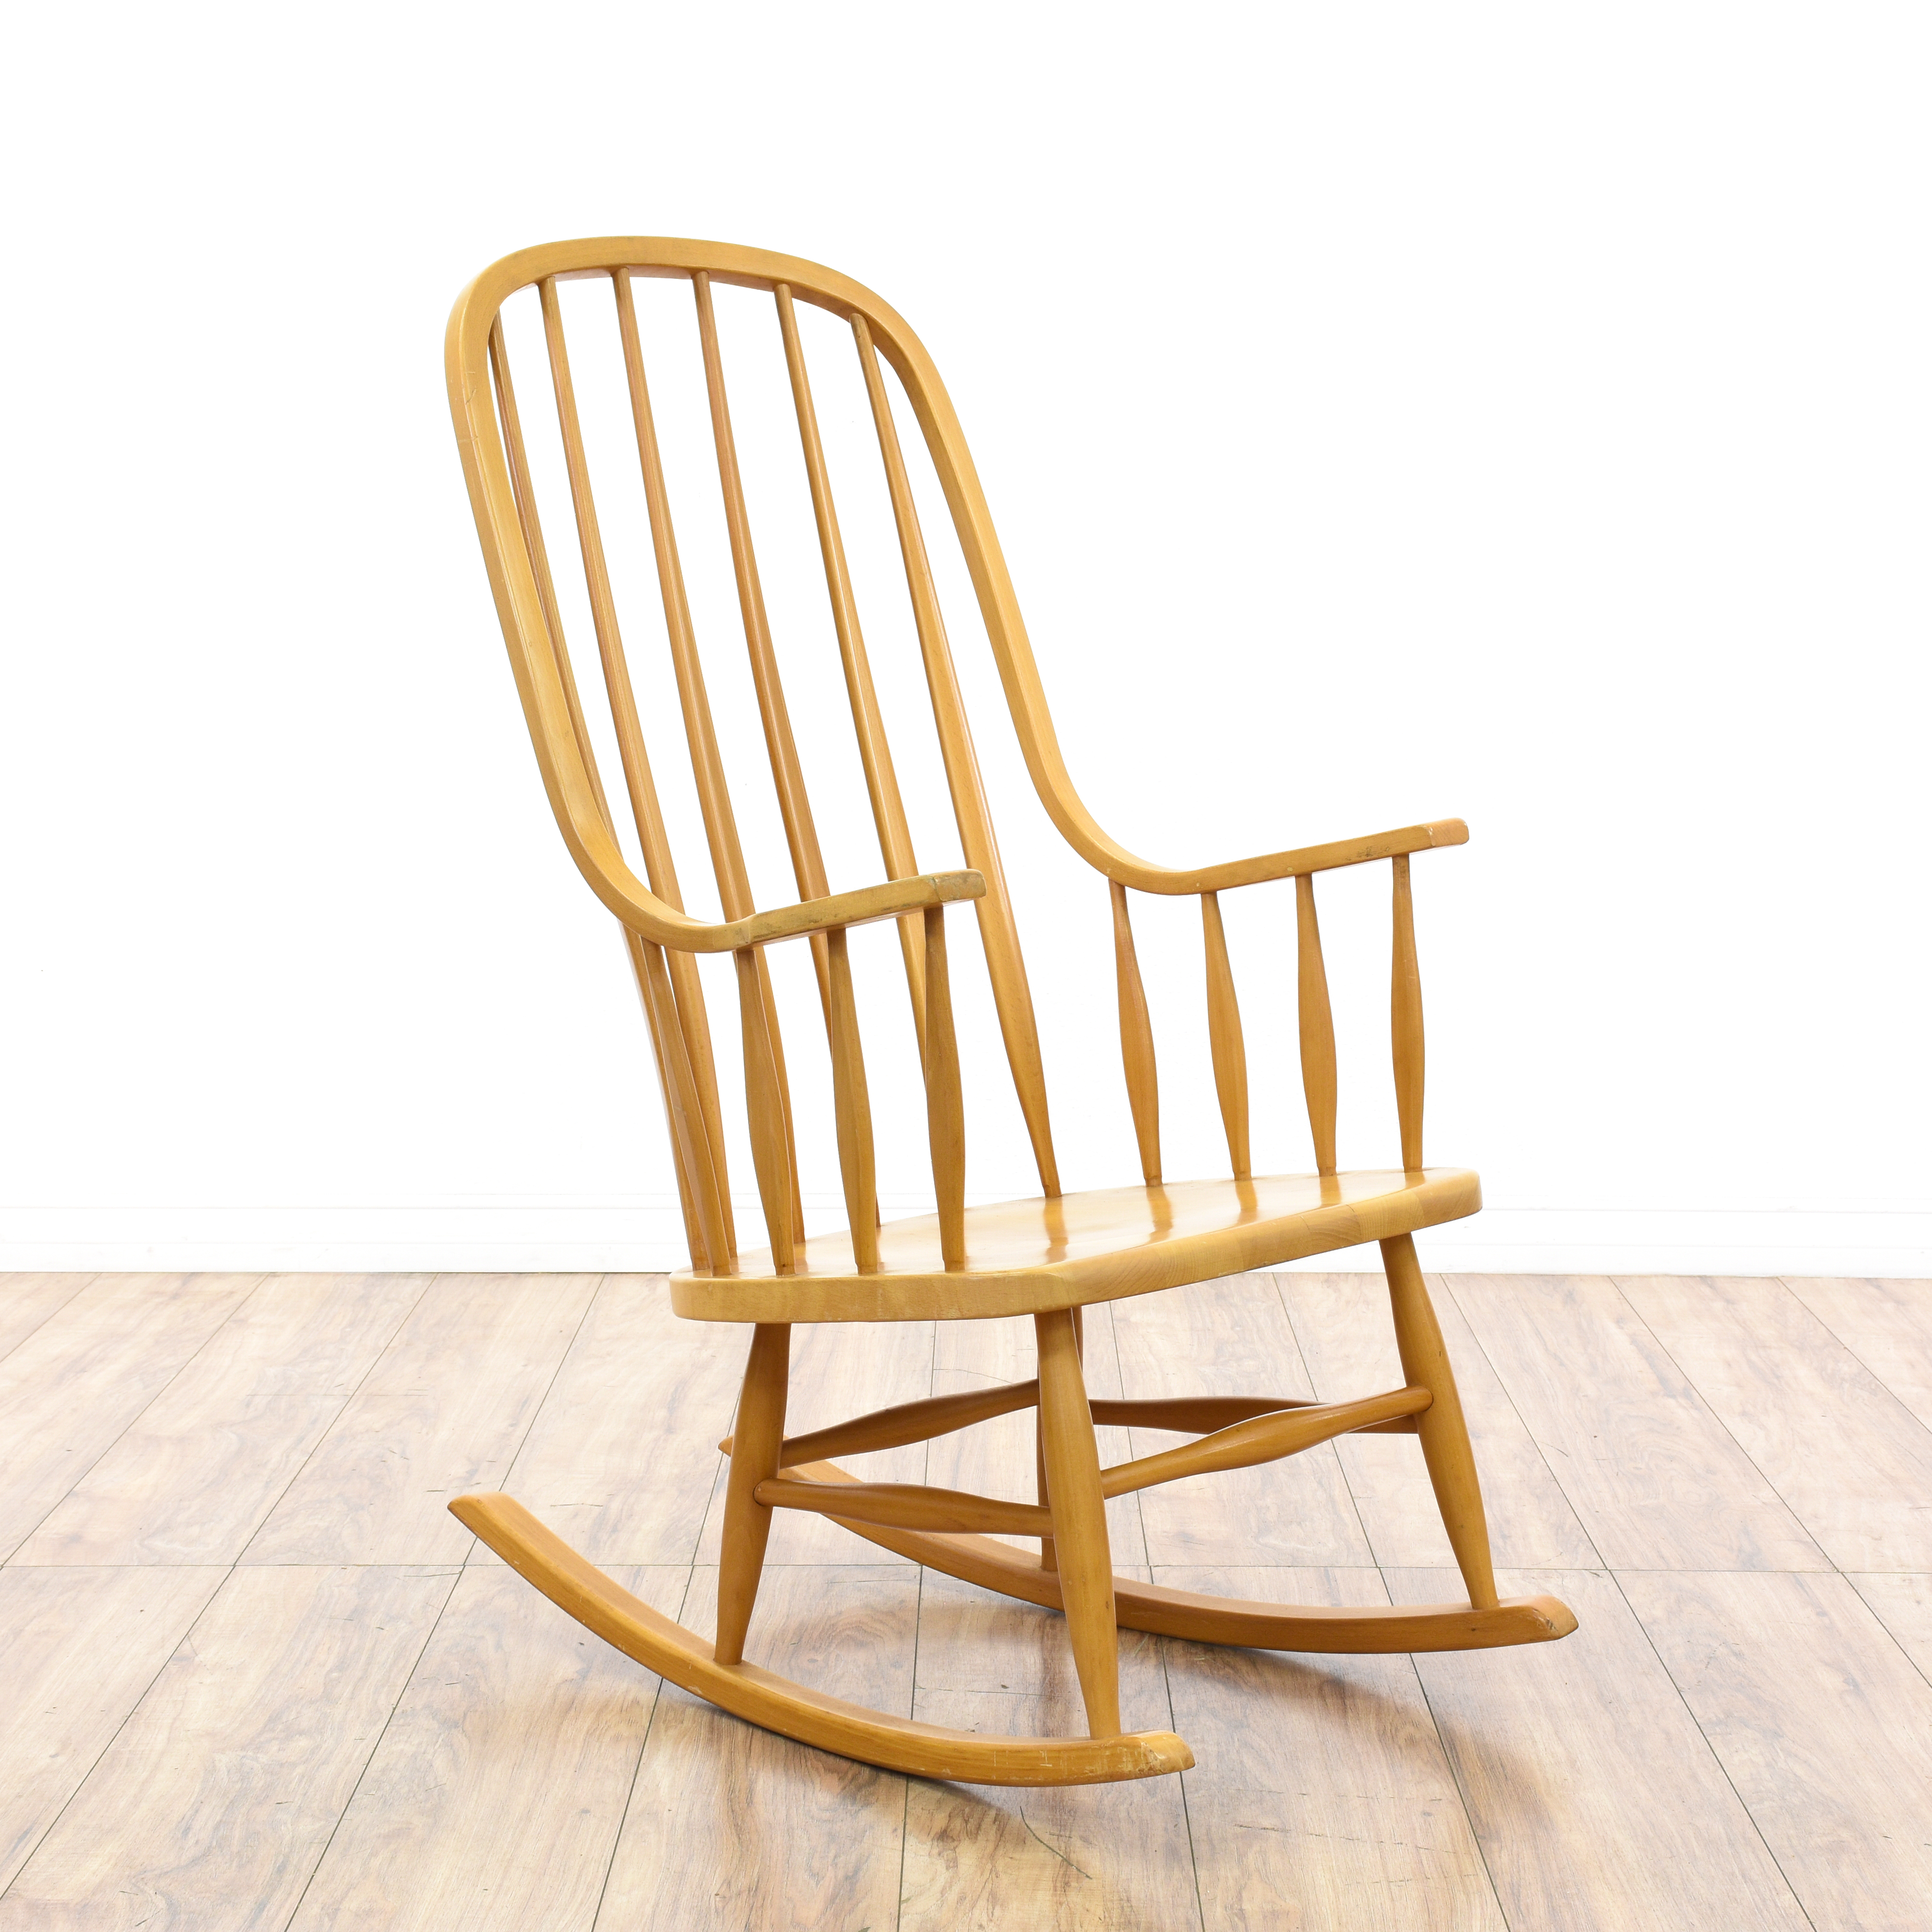 wood rocking chair styles free plans for building adirondack chairs scandinavian modern style loveseat